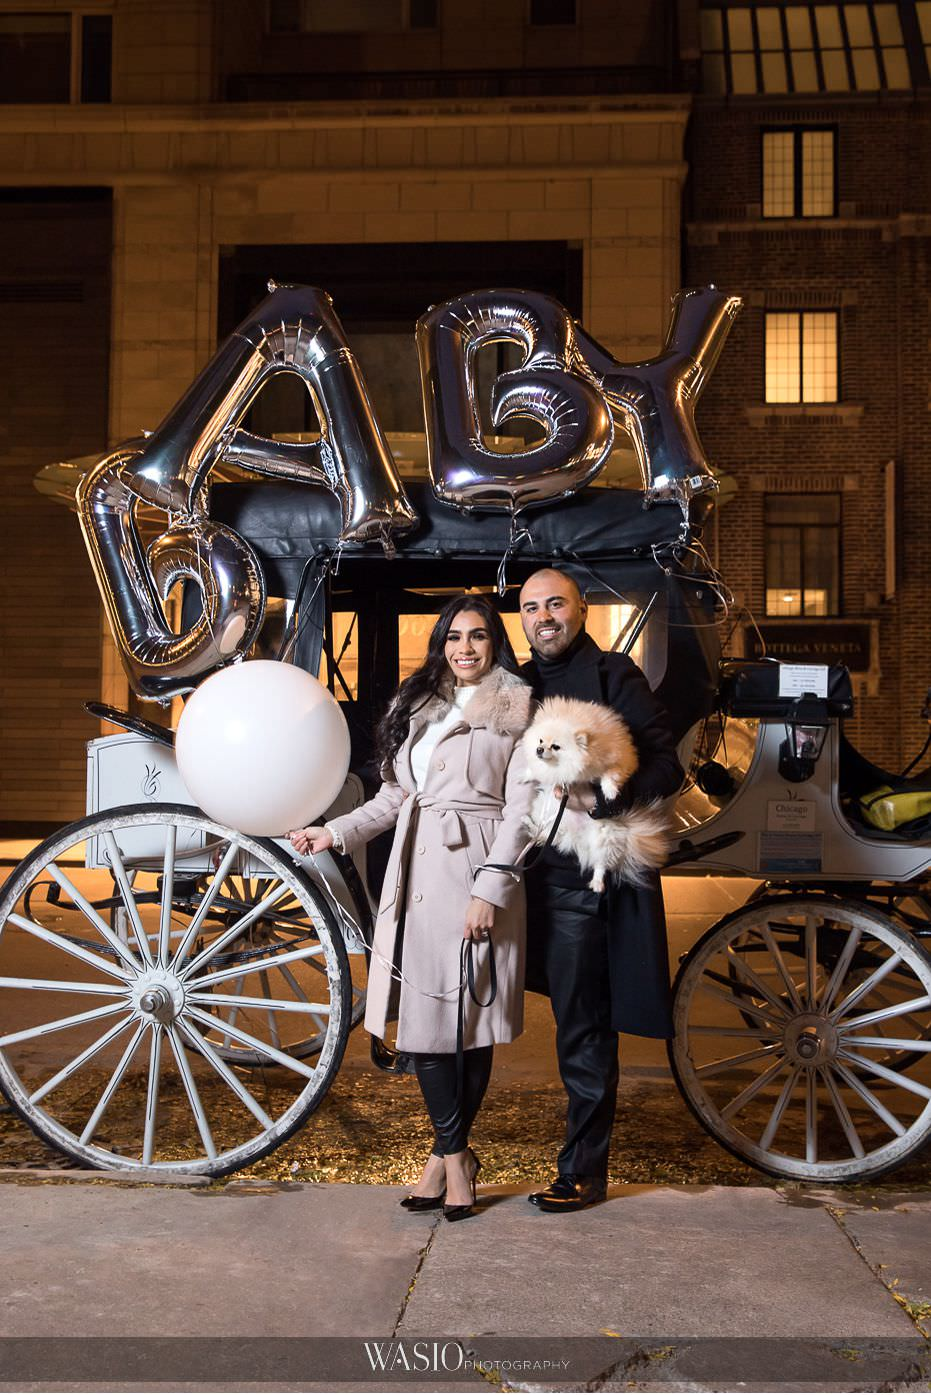 The-perfect-anniversary-photo-shoot-pregnancy-announcement-baby-on-the-way-white-horse-carriage-perfect-62 The Perfect Anniversary Photo Shoot - Nicole & Anthony